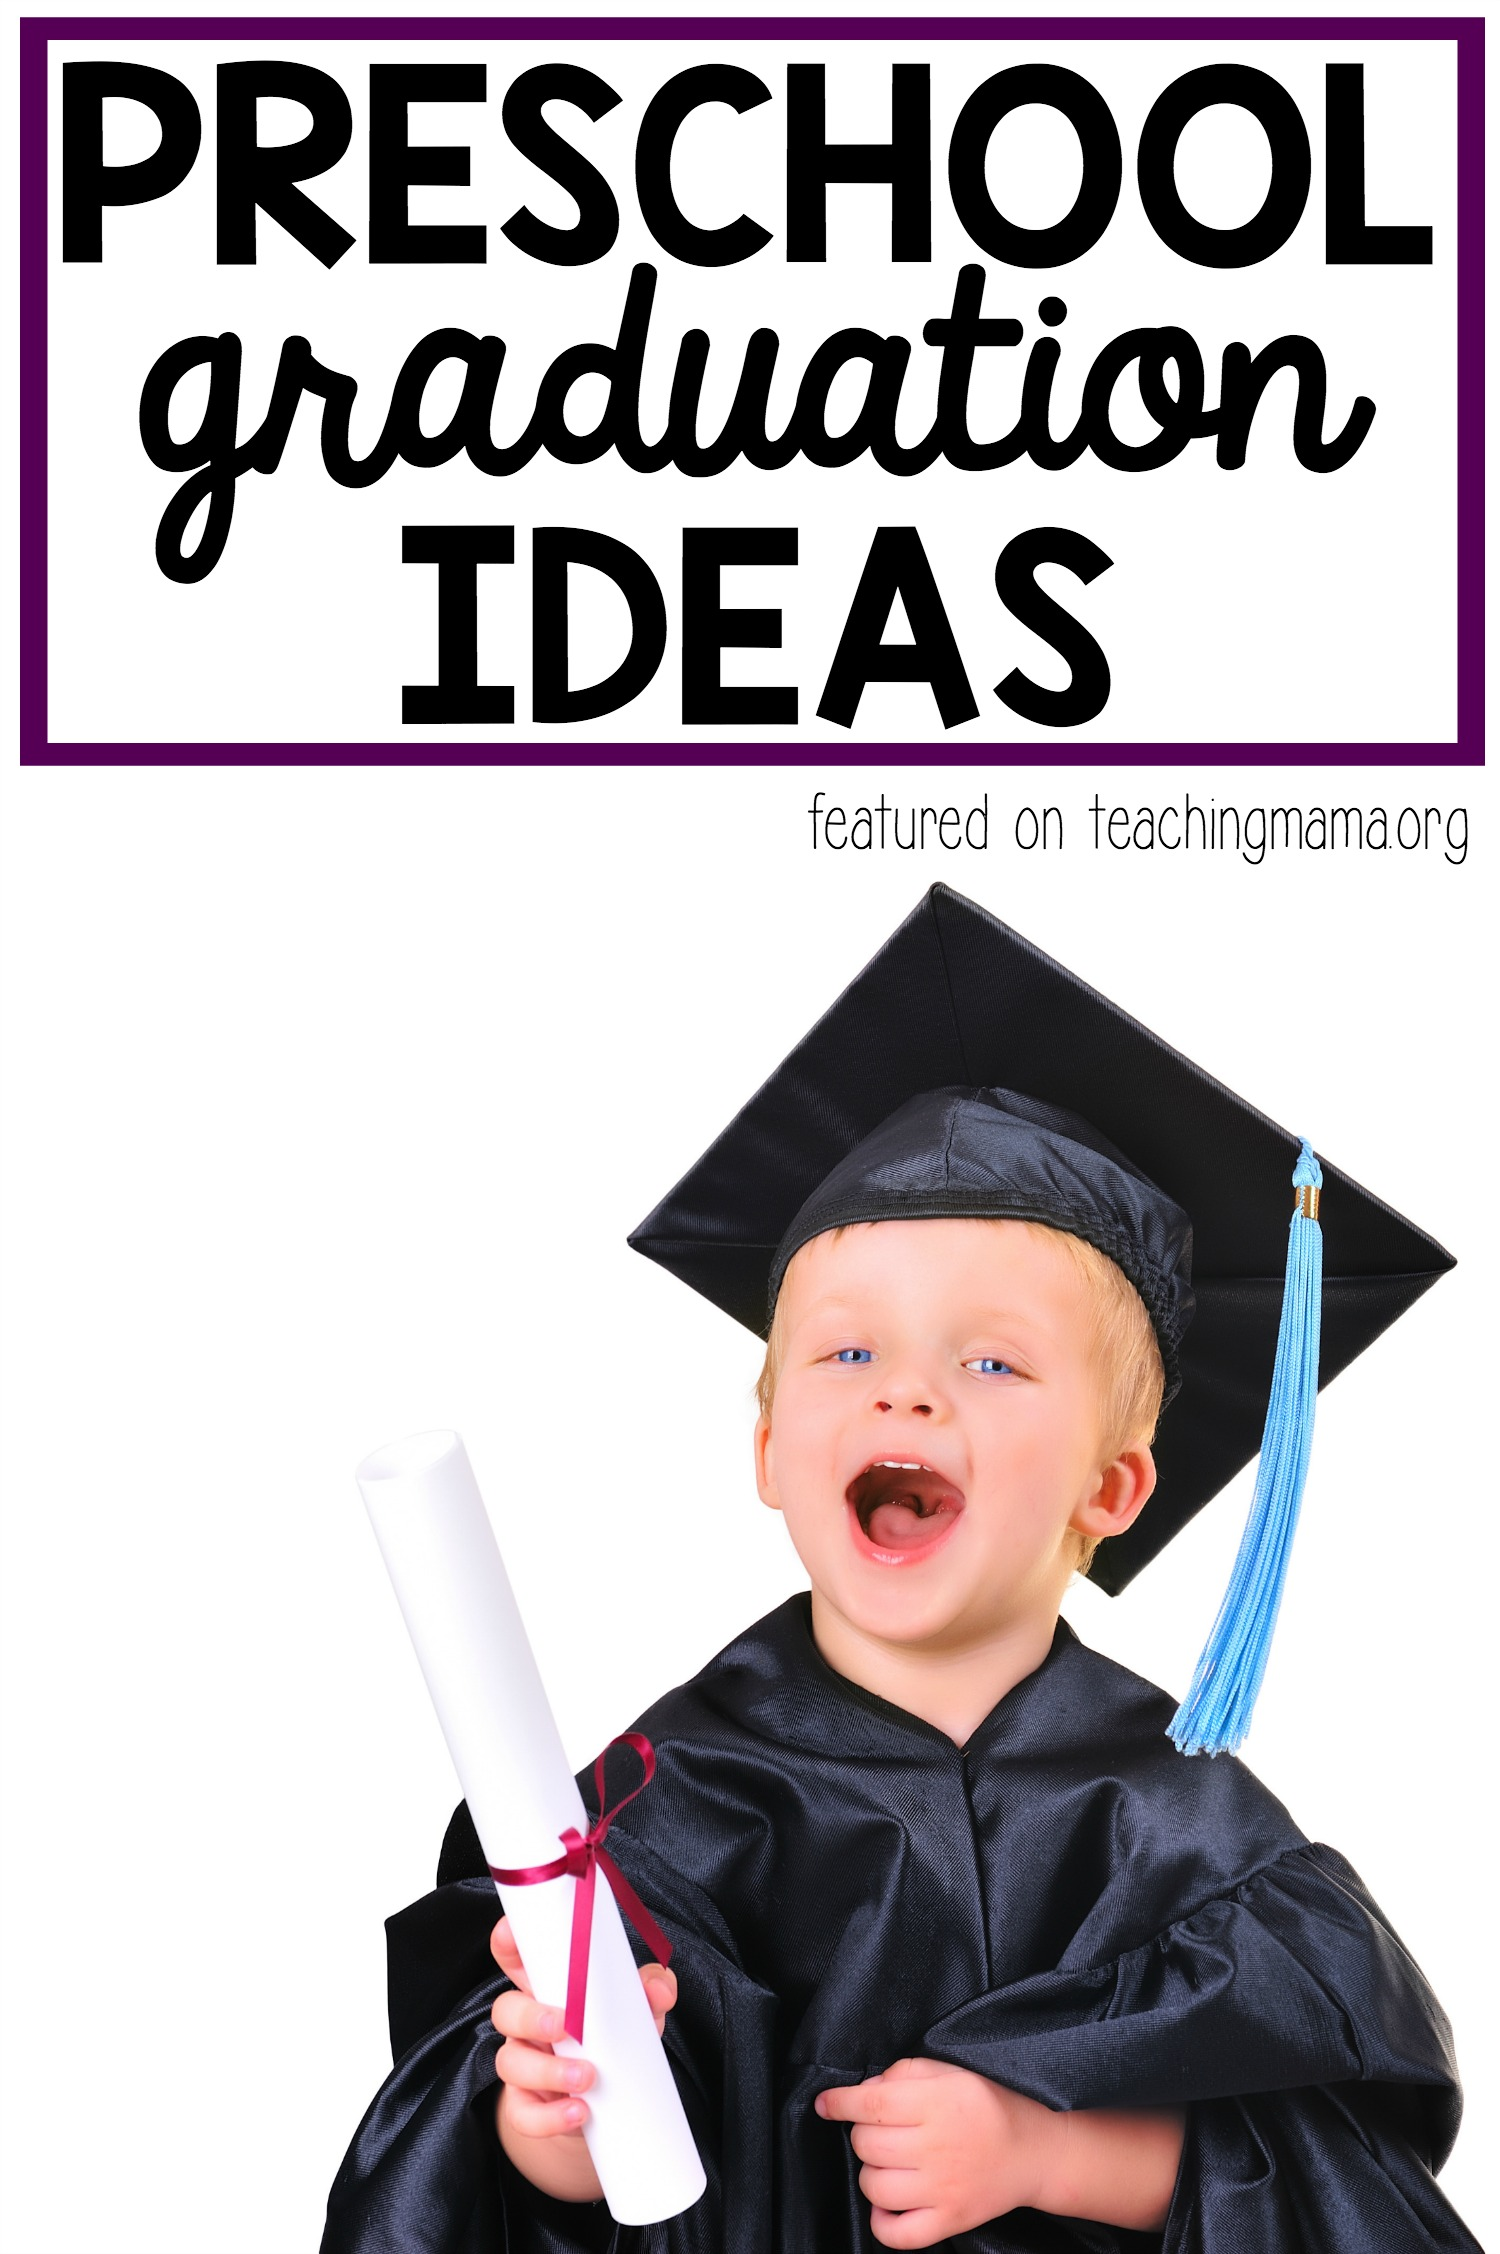 Fullsize Of Graduation Photo Ideas